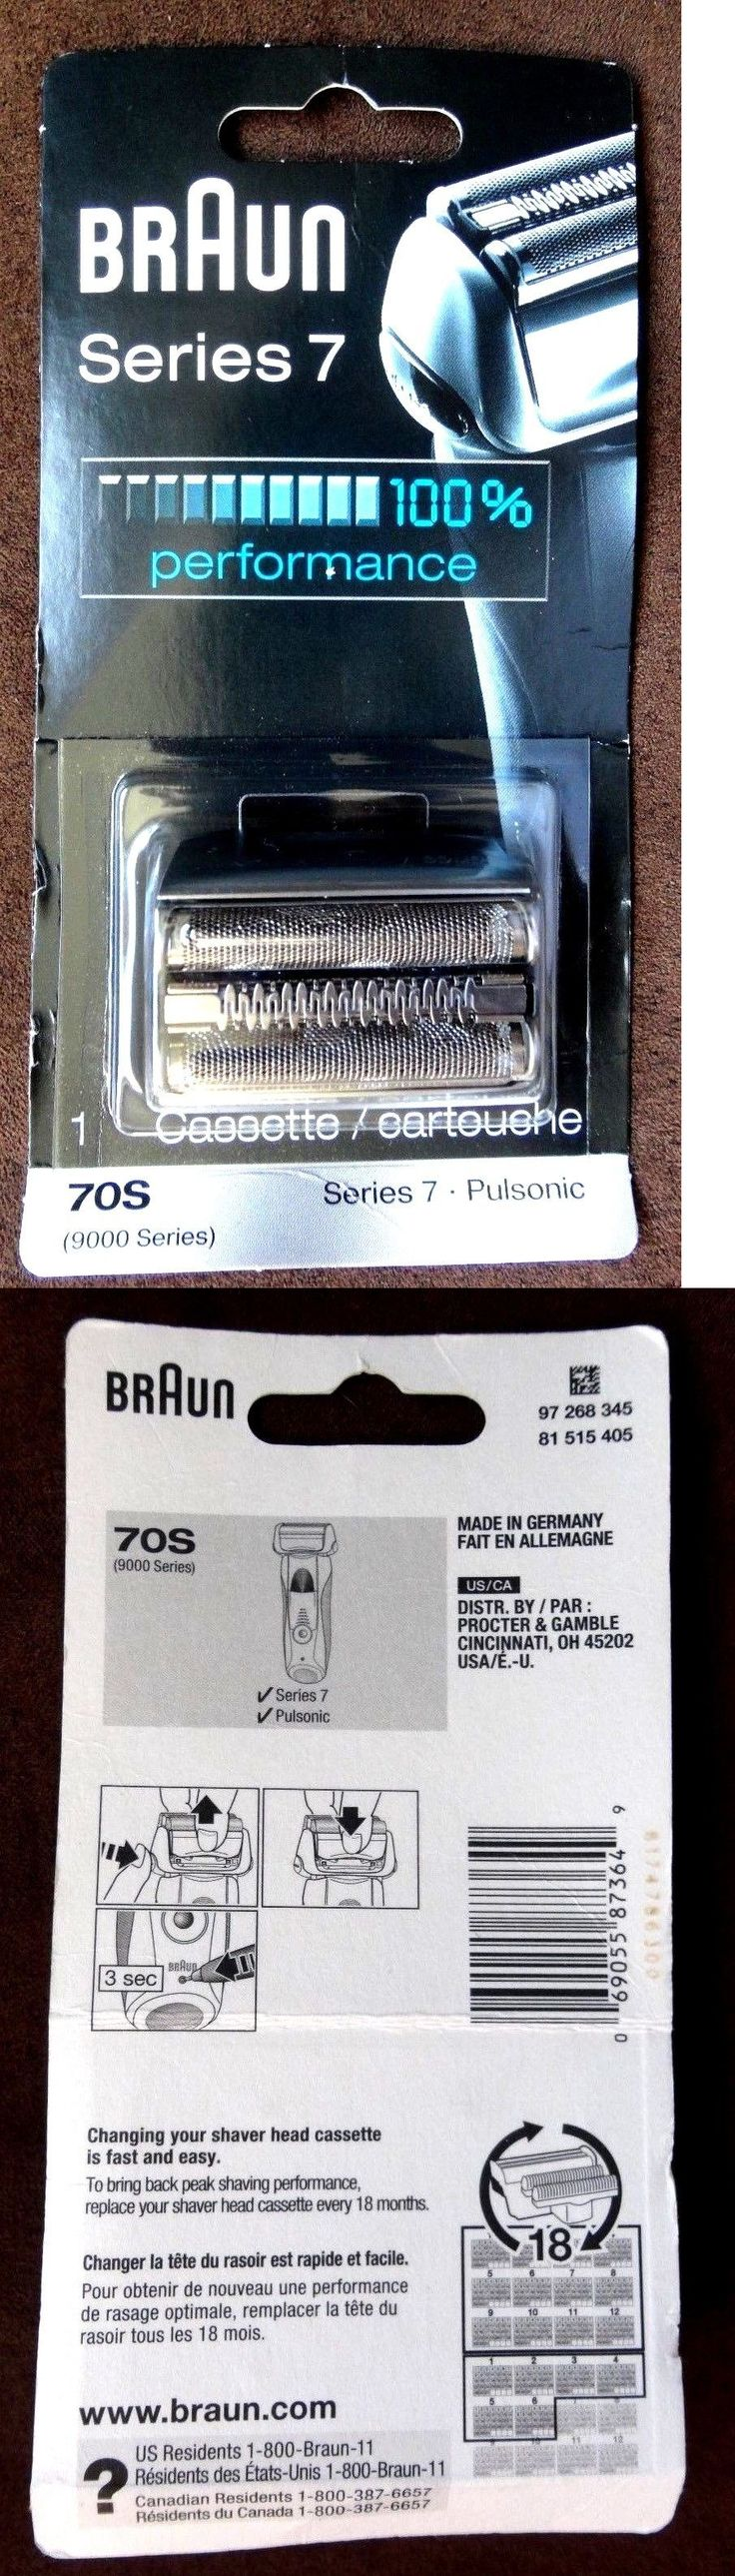 Shaver Parts and Accessories: Braun 70S Series 7 Pulsonic - 9000 Series Shaver Cassette - **Authentic Sealed** BUY IT NOW ONLY: $52.88